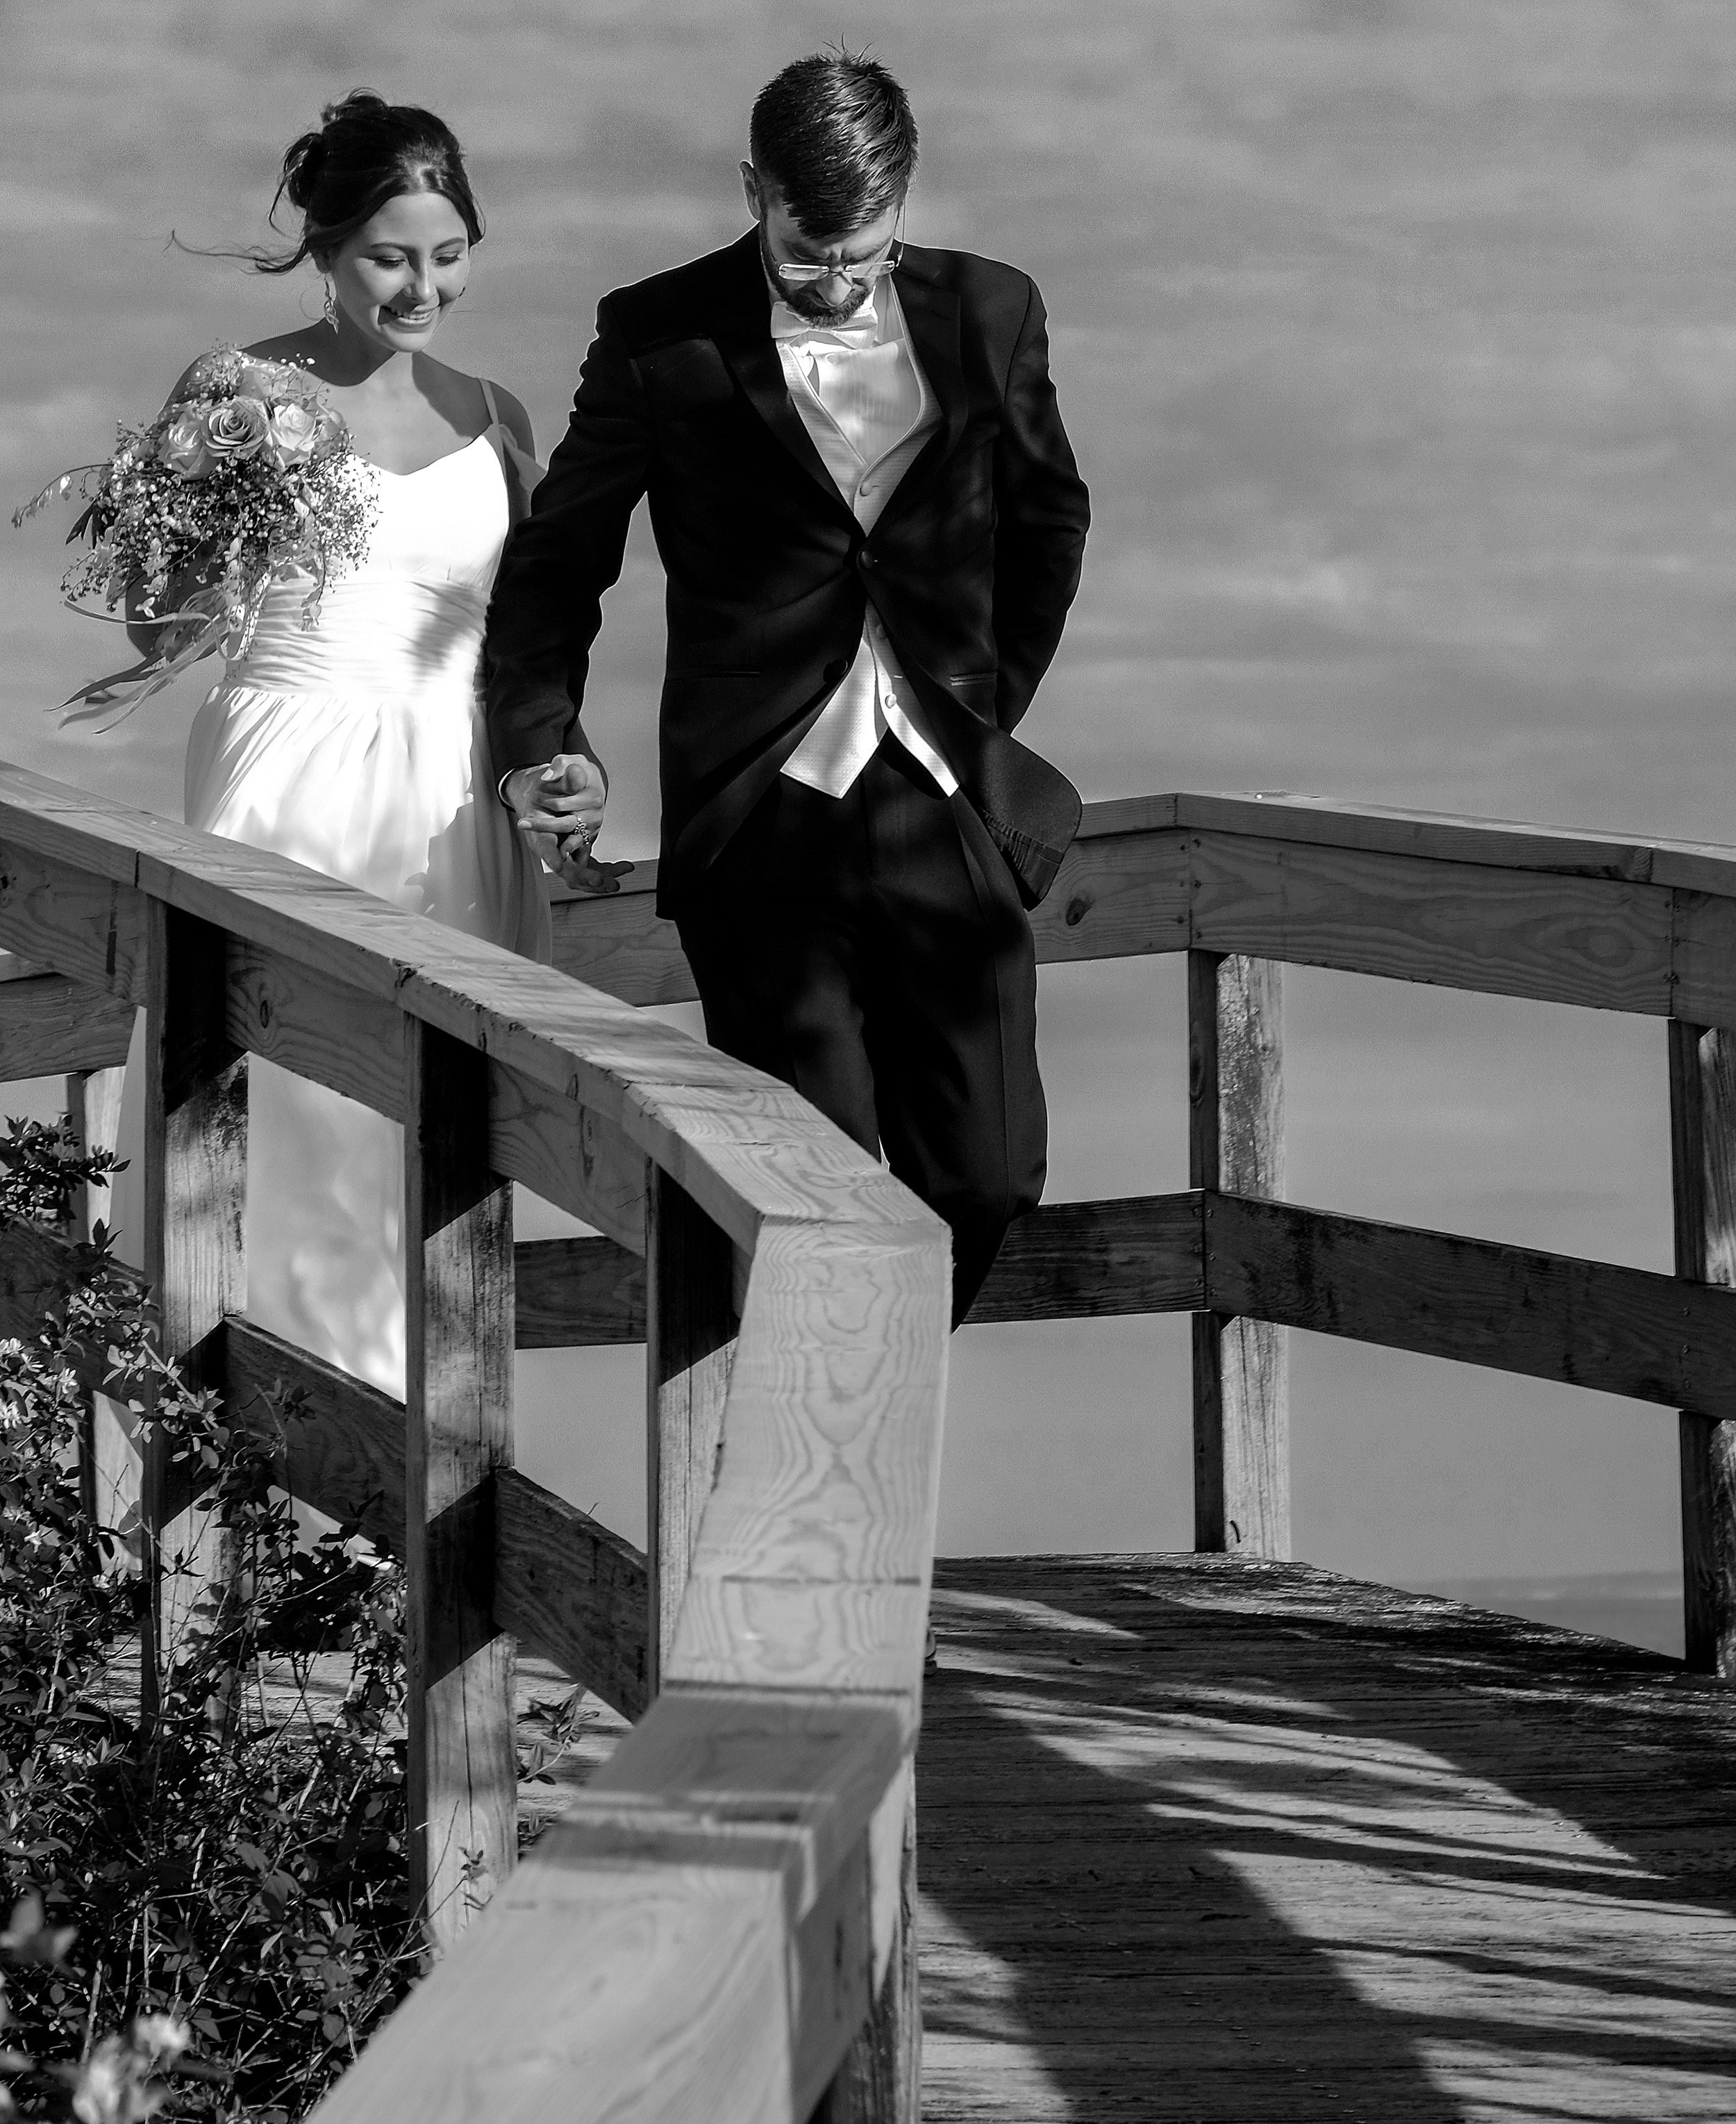 Mike+Kelly_WeddingBW_060_080217mag.jpg